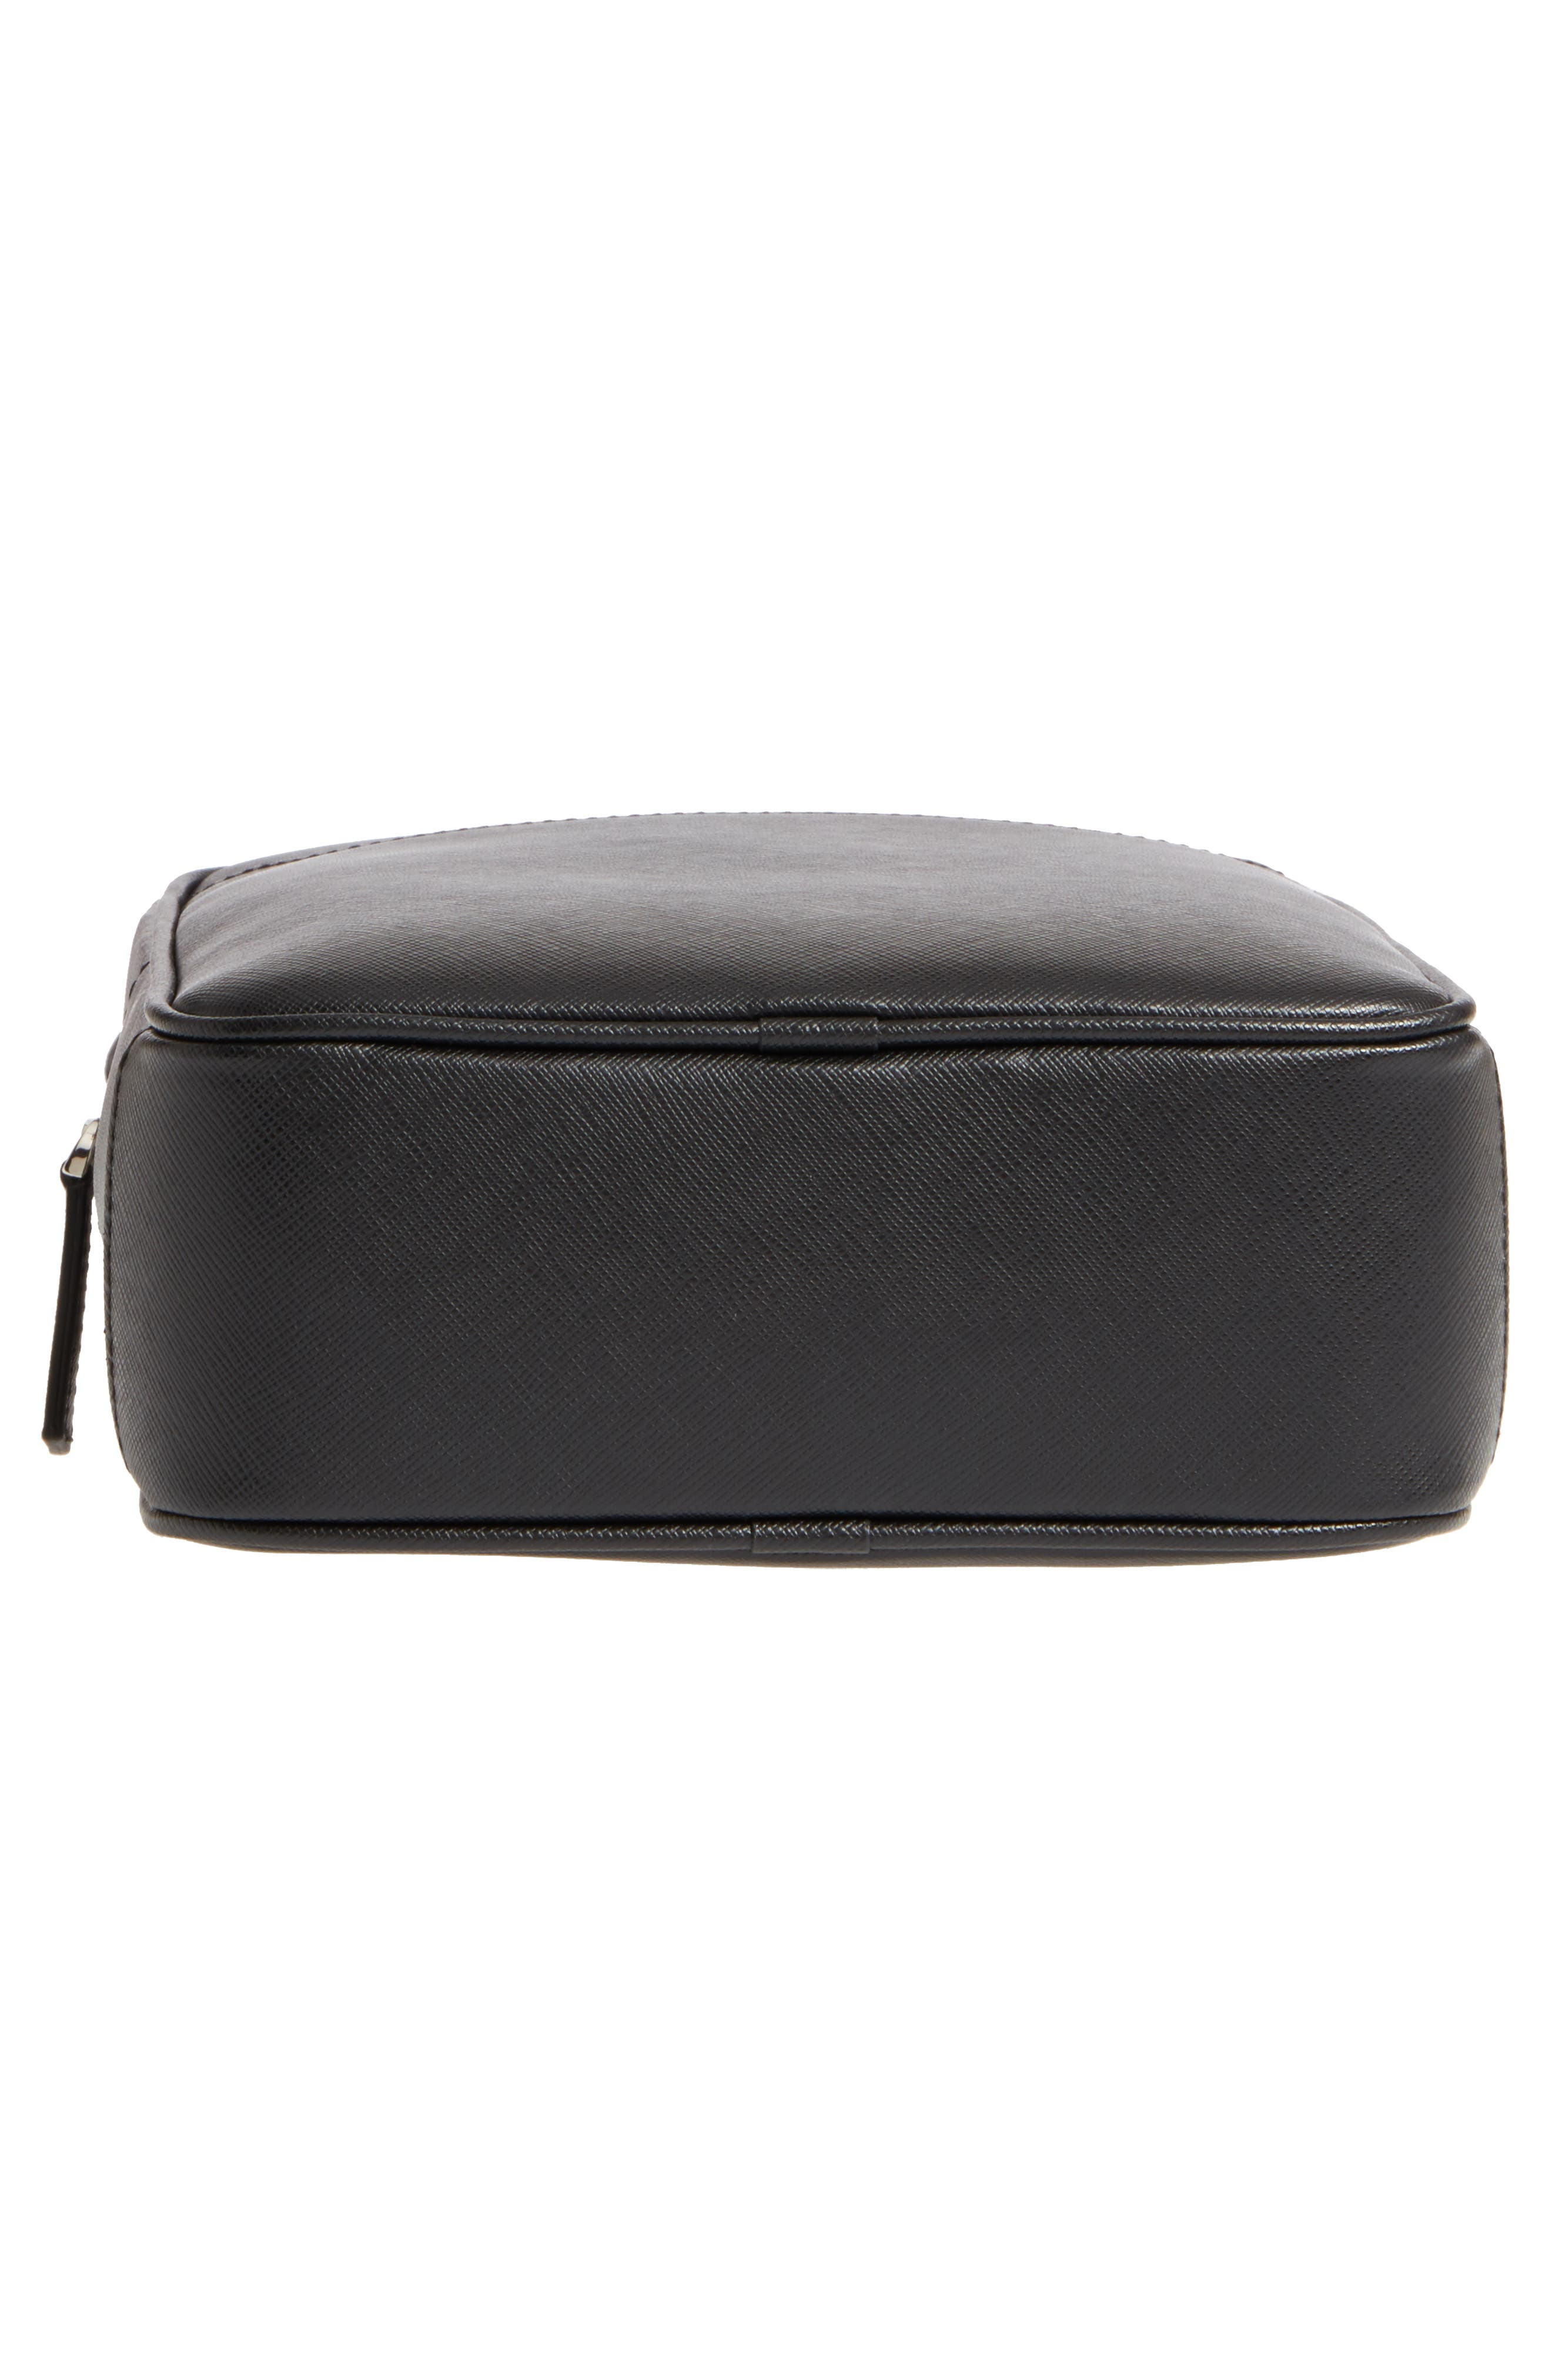 Sartorial North South Leather Bag,                             Alternate thumbnail 6, color,                             Black